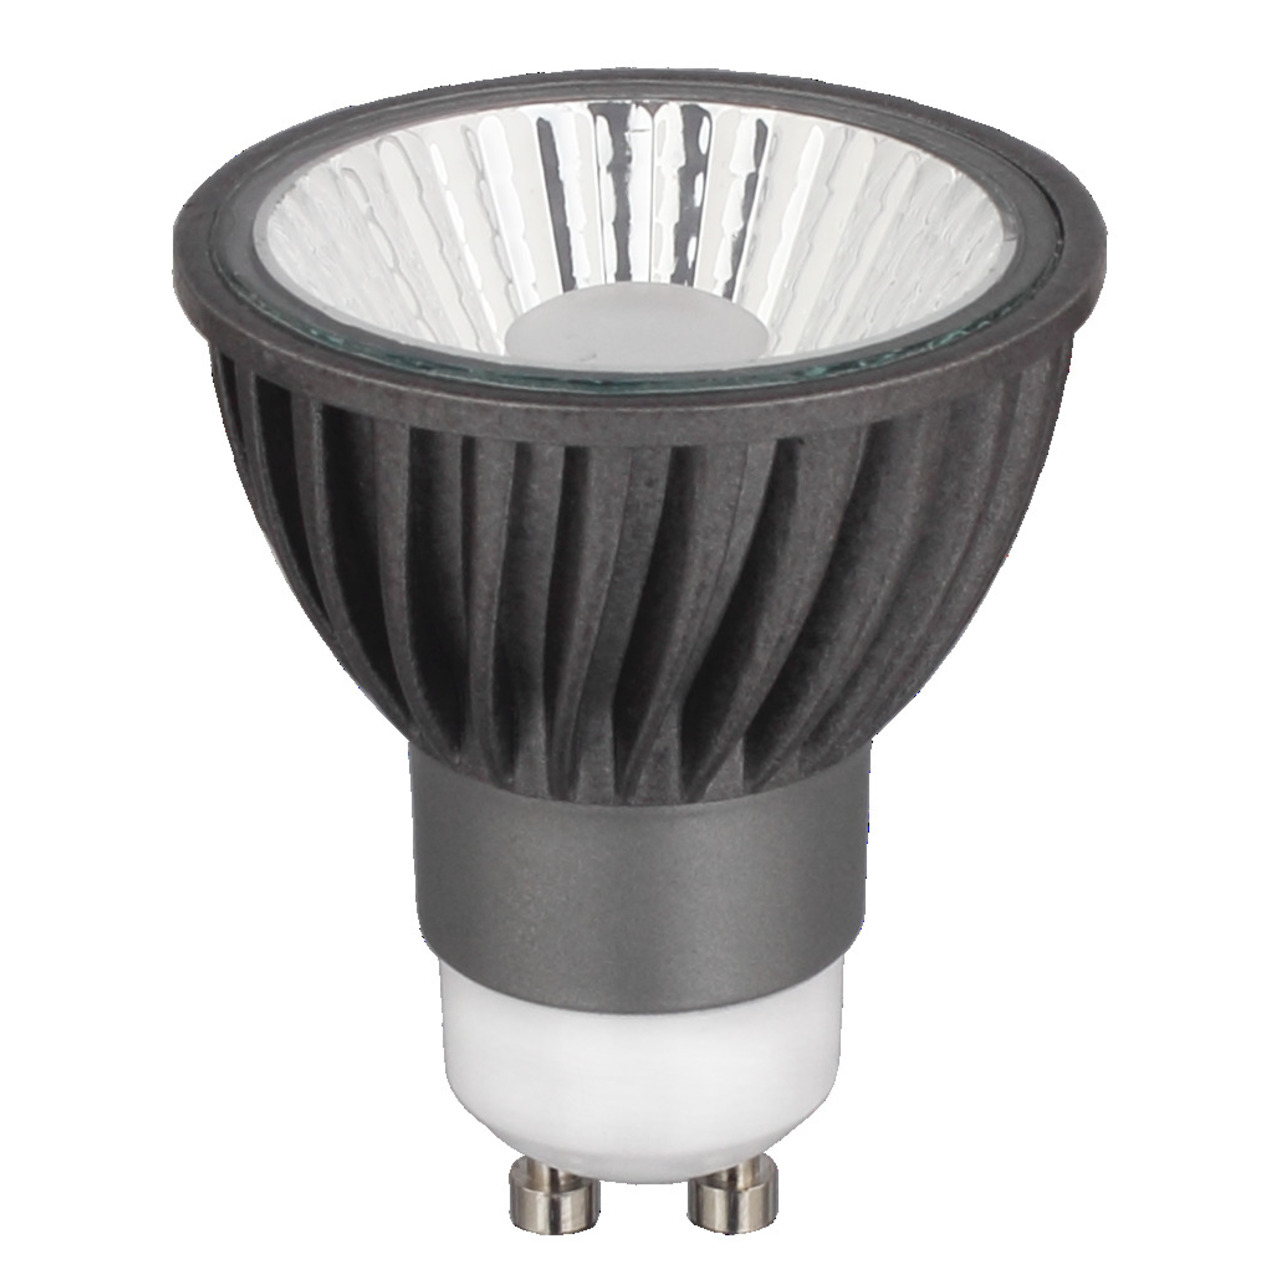 CV-Lighting HALED III 6-W-GU10-LED-Lampe- warmweiss (3000 K)- dimmbar- 36-